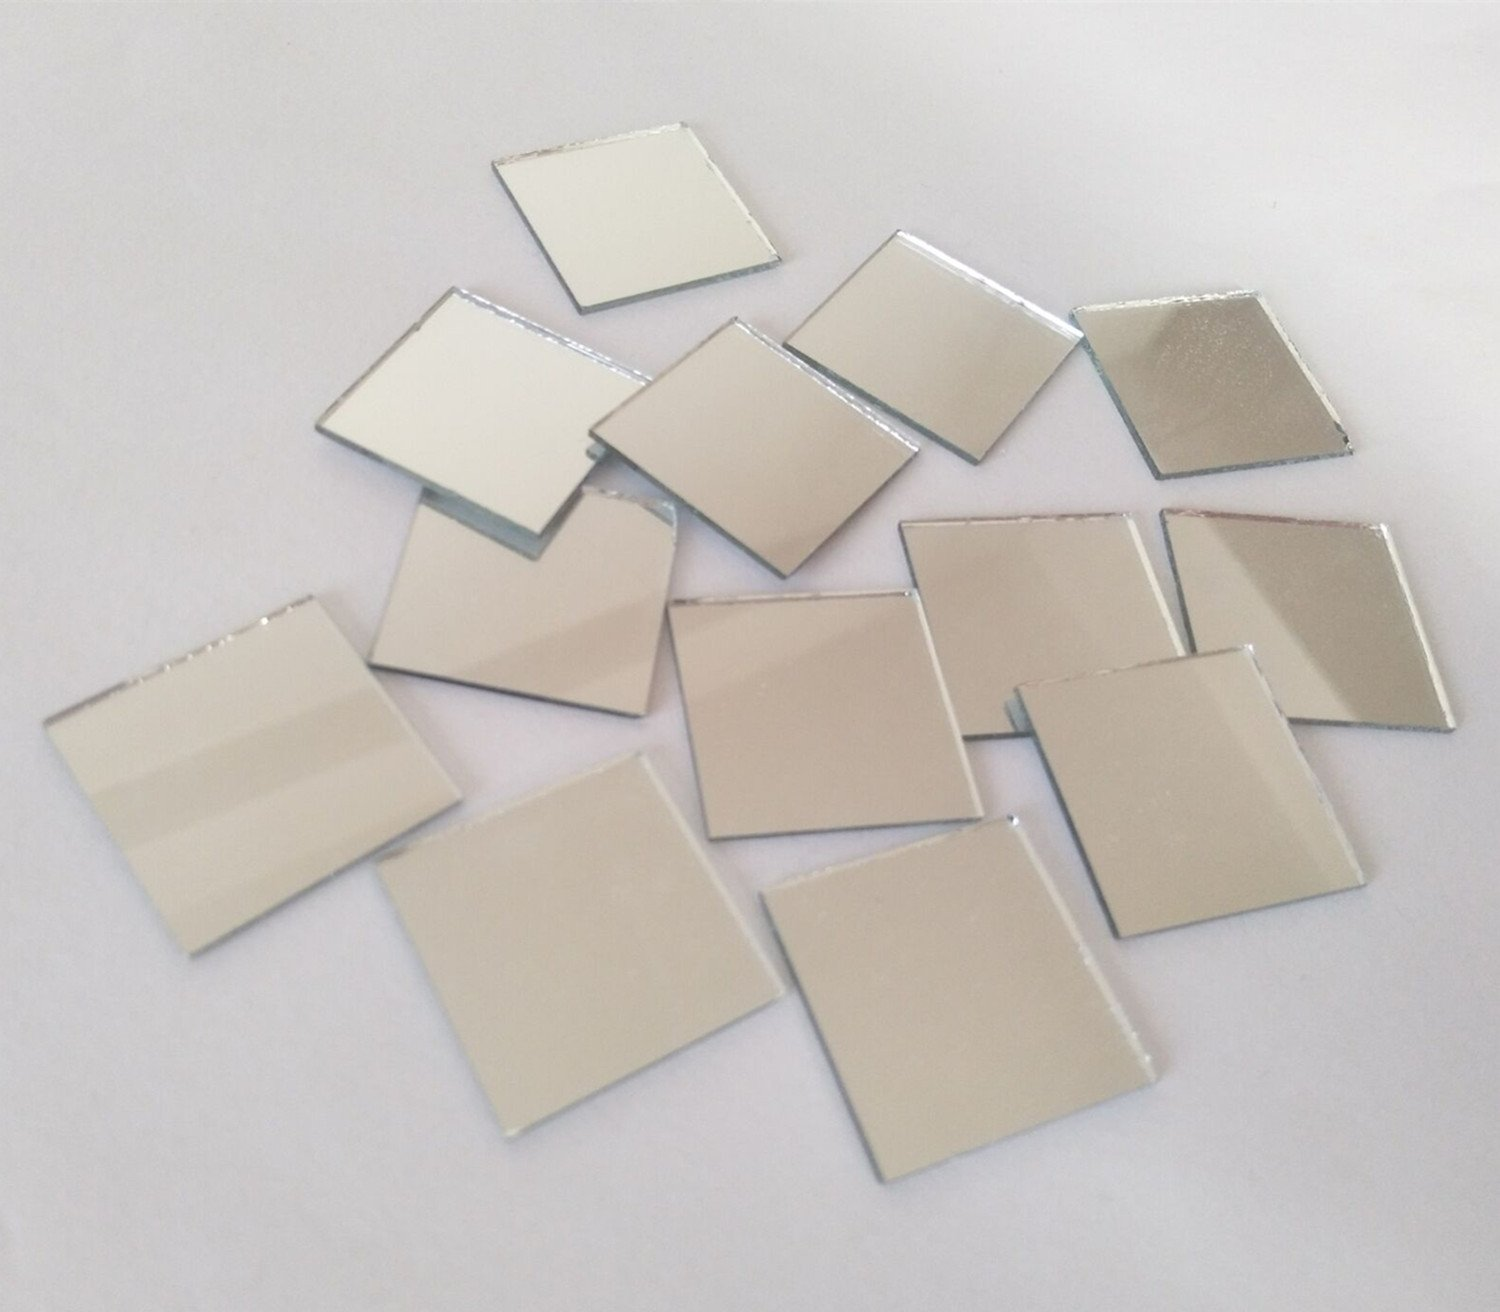 100PCS Glass Square Mirror Mosaic Tiles Square Craft Mirrors DIY Accessory (1inch) RUIXUAN